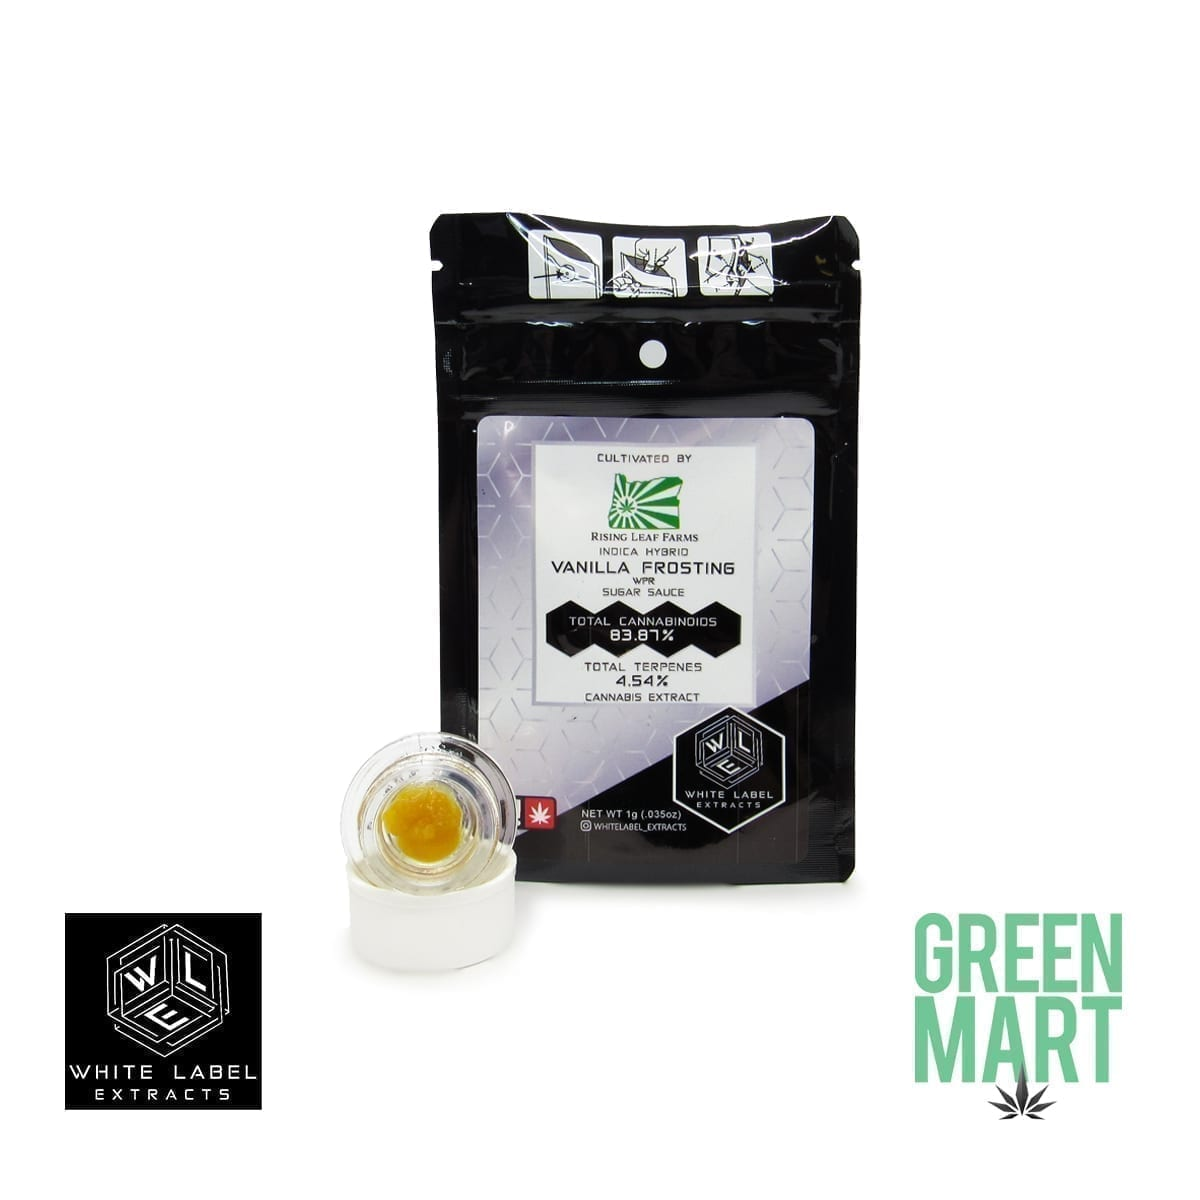 White Label Extracts - Vanilla Frosting Sugar Sauce